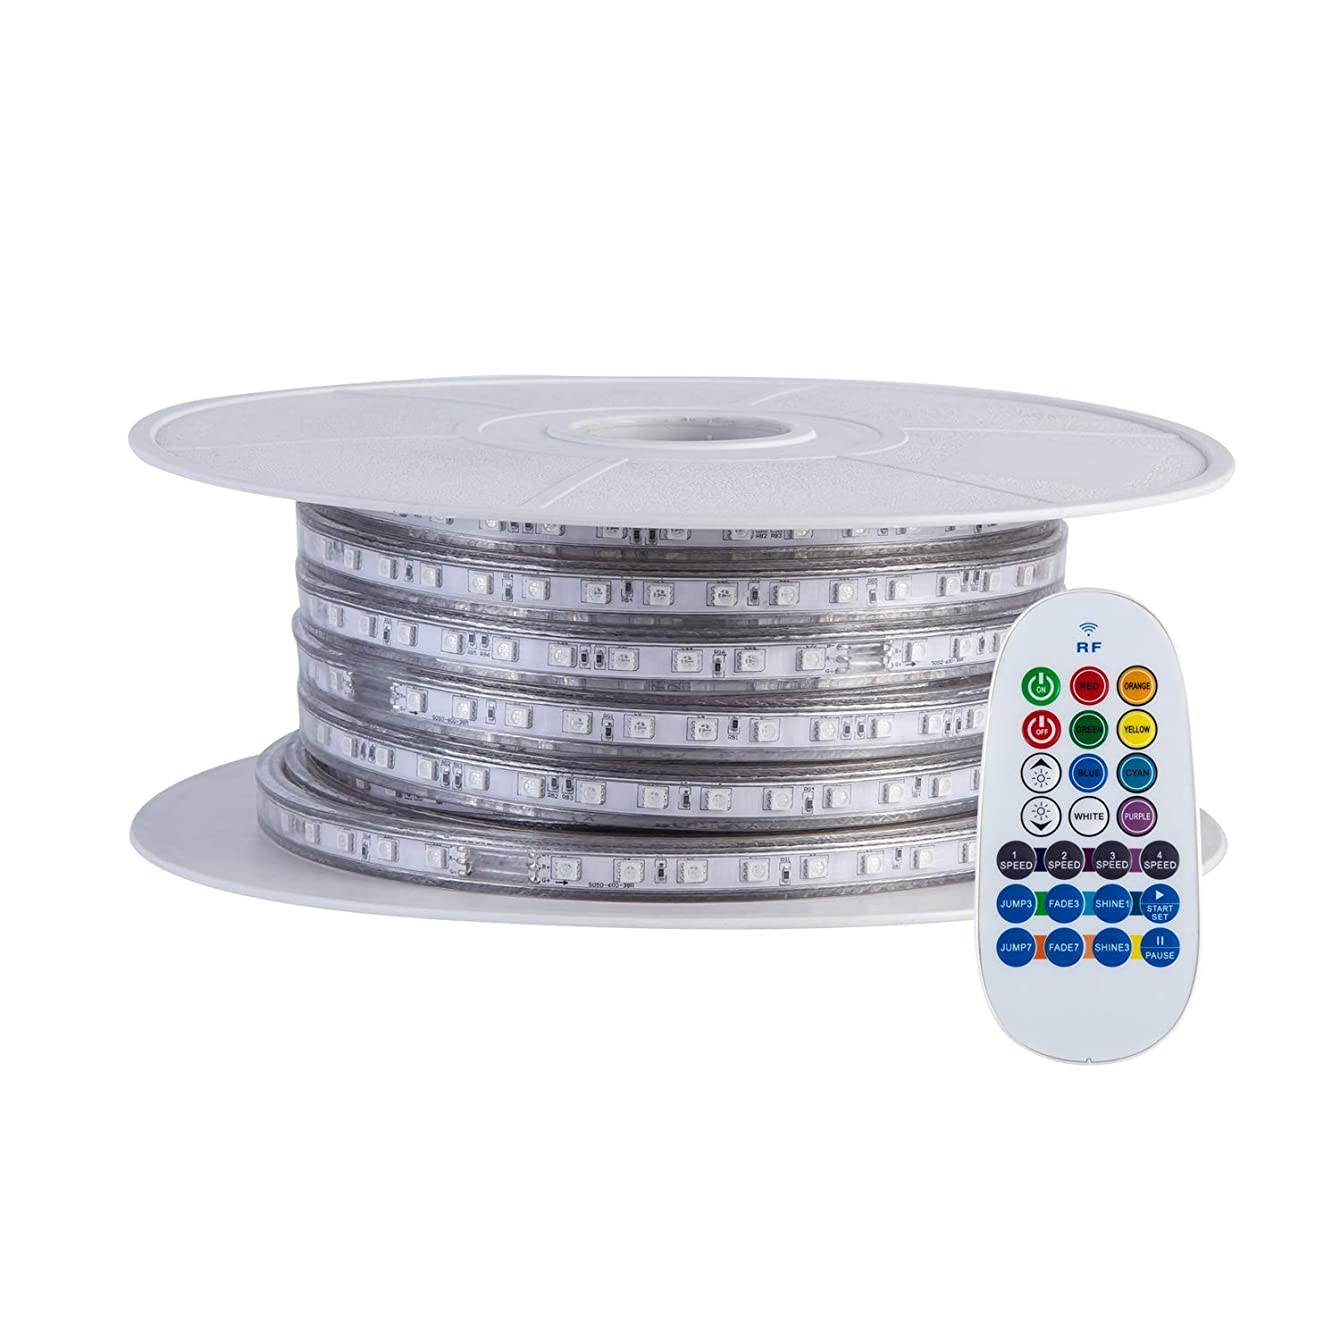 GuoTonG 65.6ft/20m Dimmable Strip Lights, Flexible RGB 1200 LEDs, 110V, 4 Wires, Waterproof, Connectable, Power Plug Built-in Fuse Design, Radio Frequency Controller